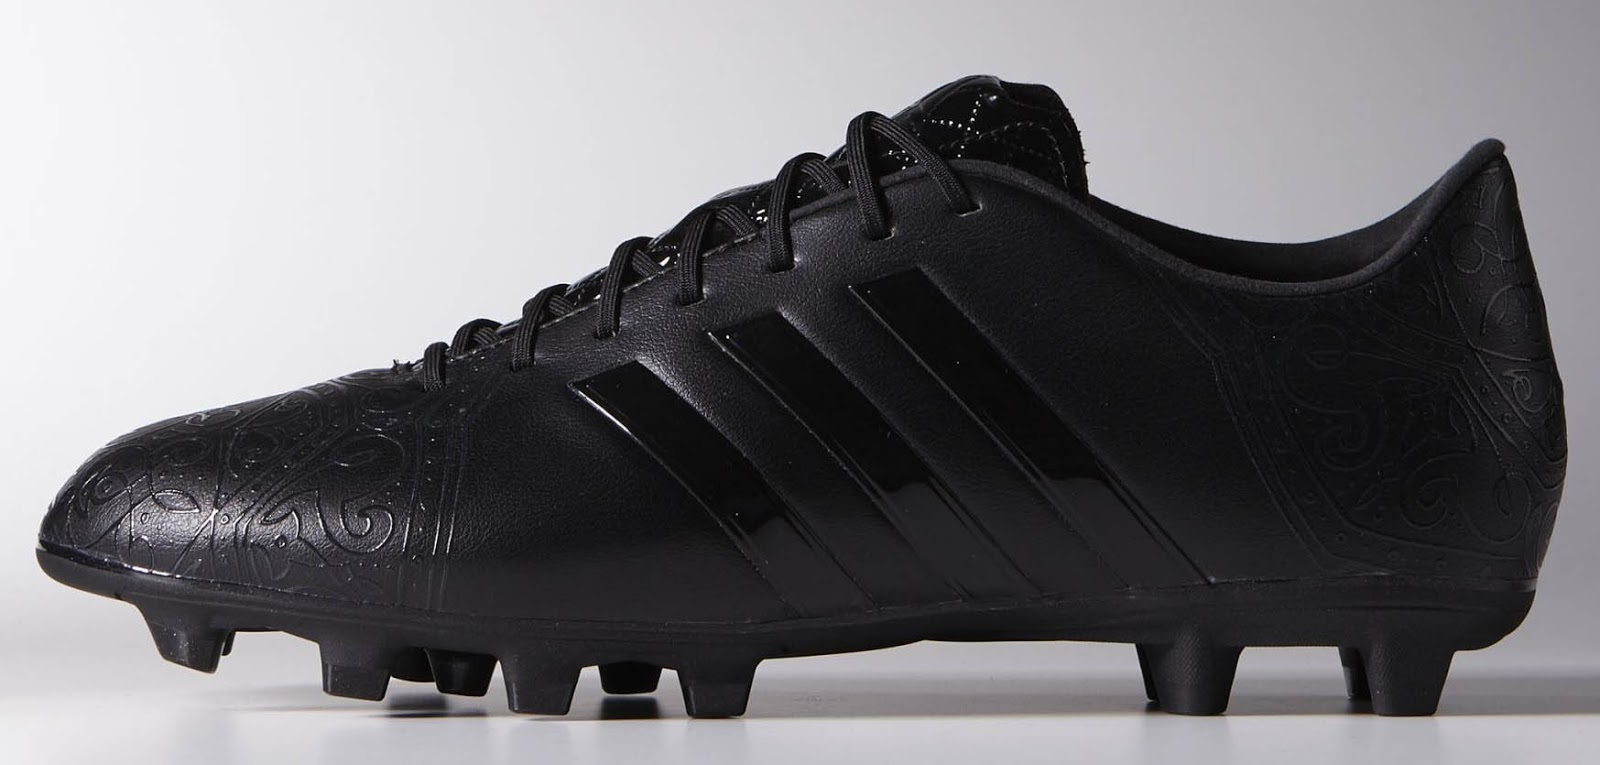 adidas adipure 11pro black pack boots released footy. Black Bedroom Furniture Sets. Home Design Ideas